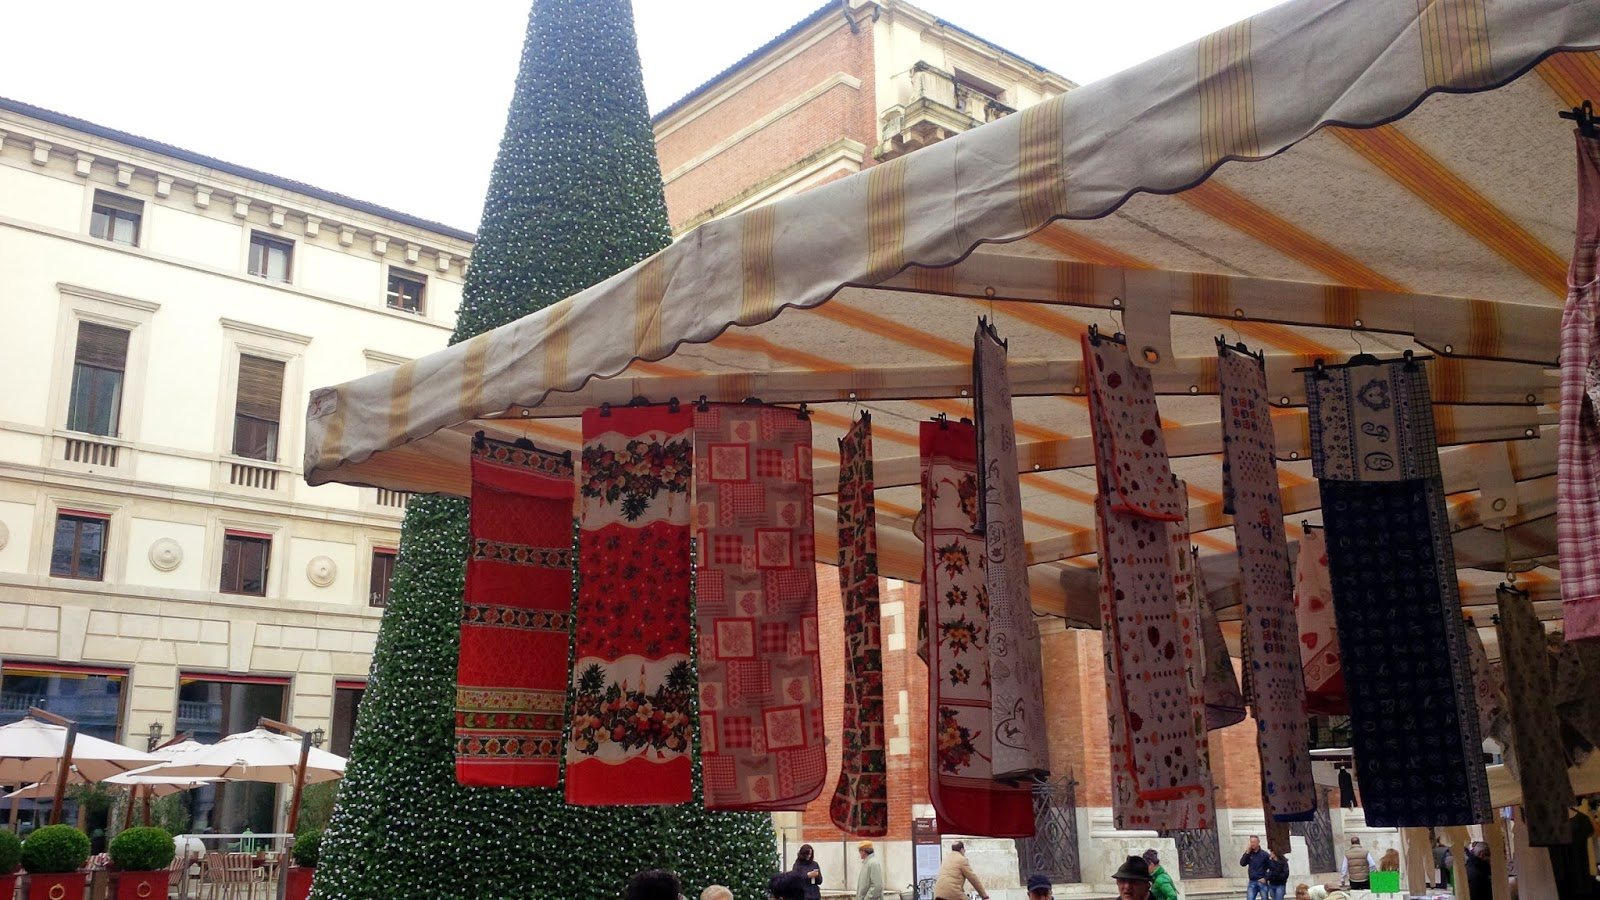 Christmas table covers and bedspreads at Vicenza's market